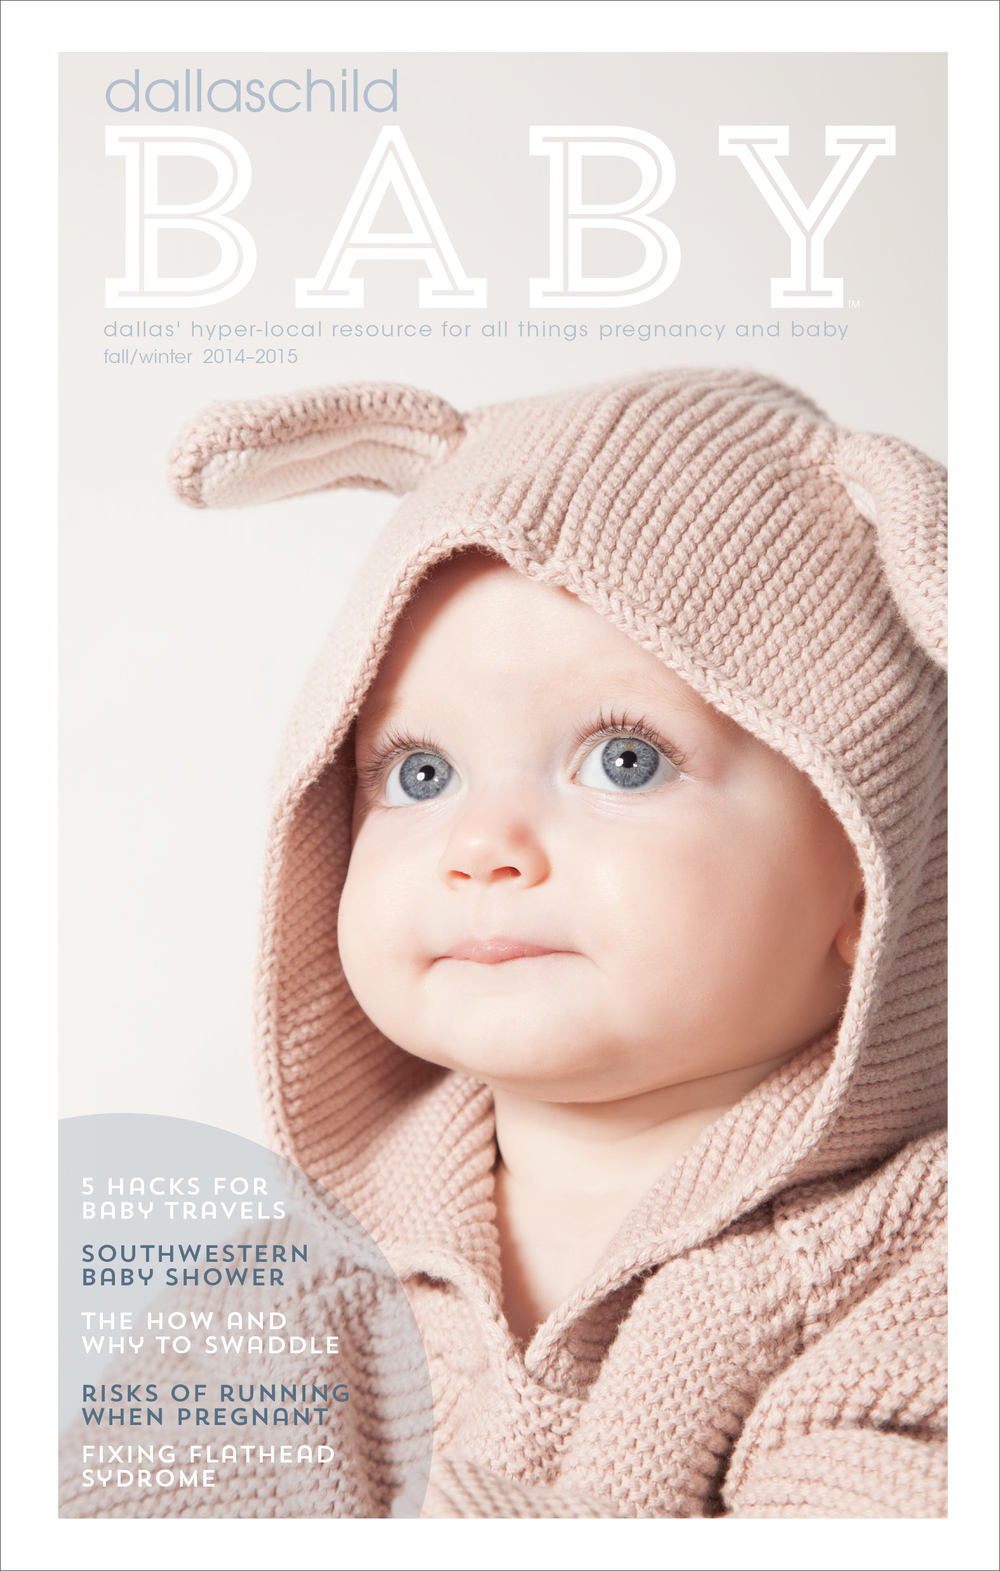 DallasChildbaby Fall/Winter 2014-2015 Cover